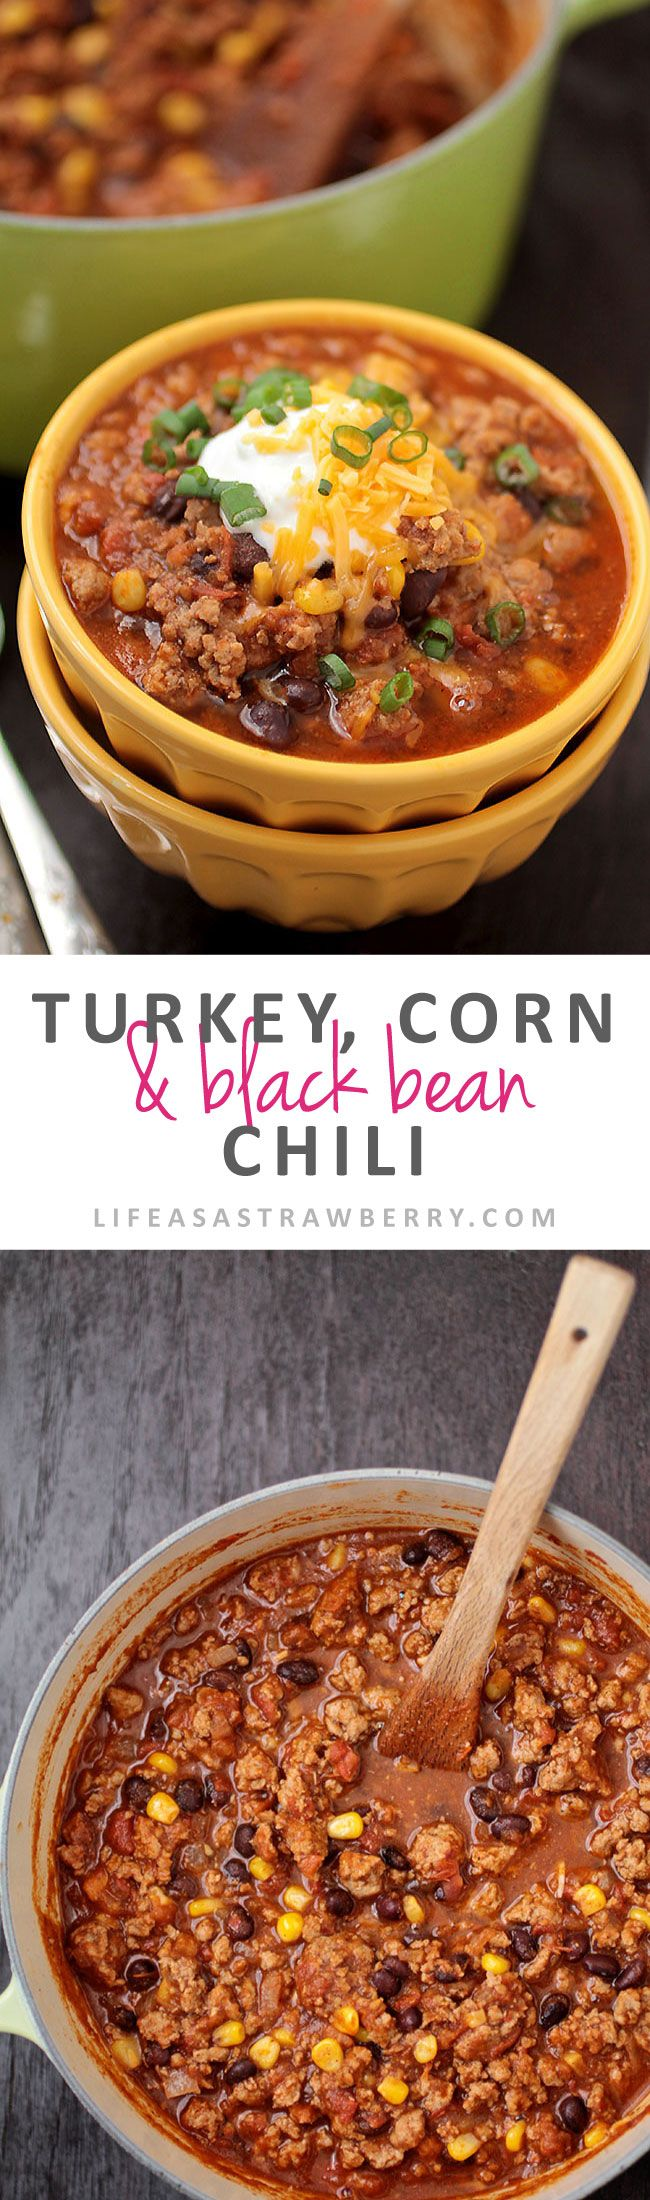 Turkey, Corn, and Black Bean Chili | Try this quick and easy turkey chili recipe for a lighter version of your favorite black bean chili. Perfect for chilly weeknights!